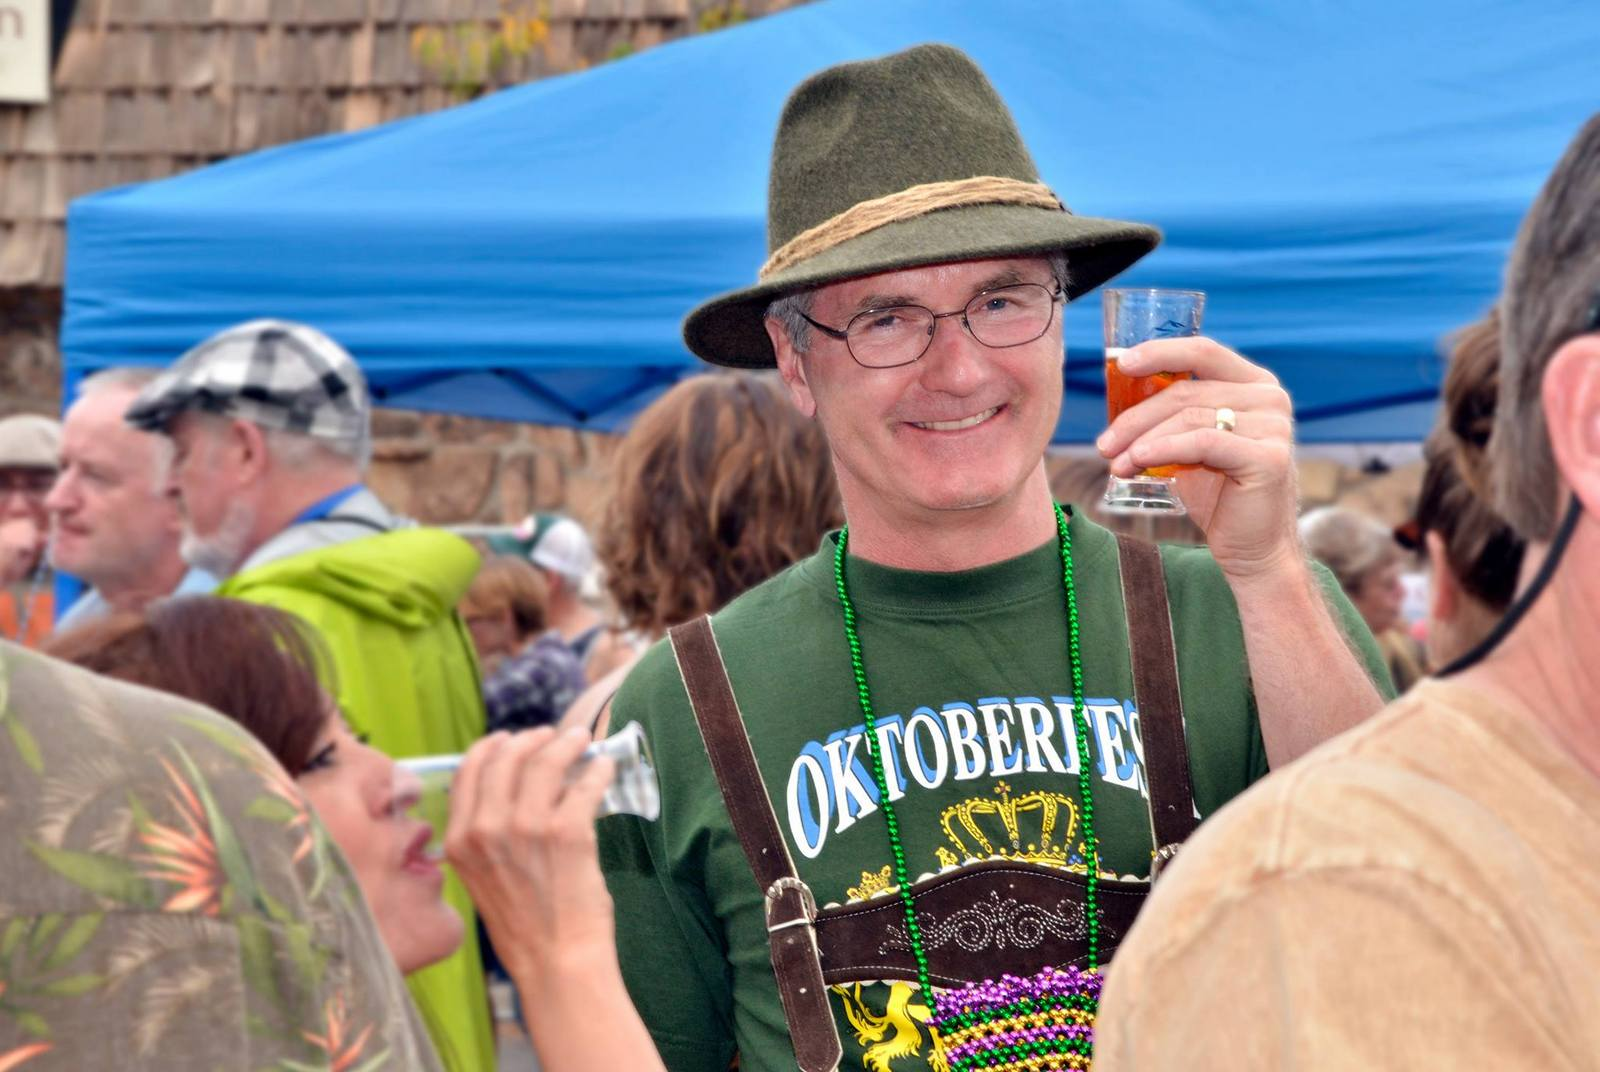 Featured Festival Montrose Oktoberfest, October 3, 201Featured Festival Montrose Oktoberfest, October 3, 2015. HeidiTown.com5. HeidiTown.com